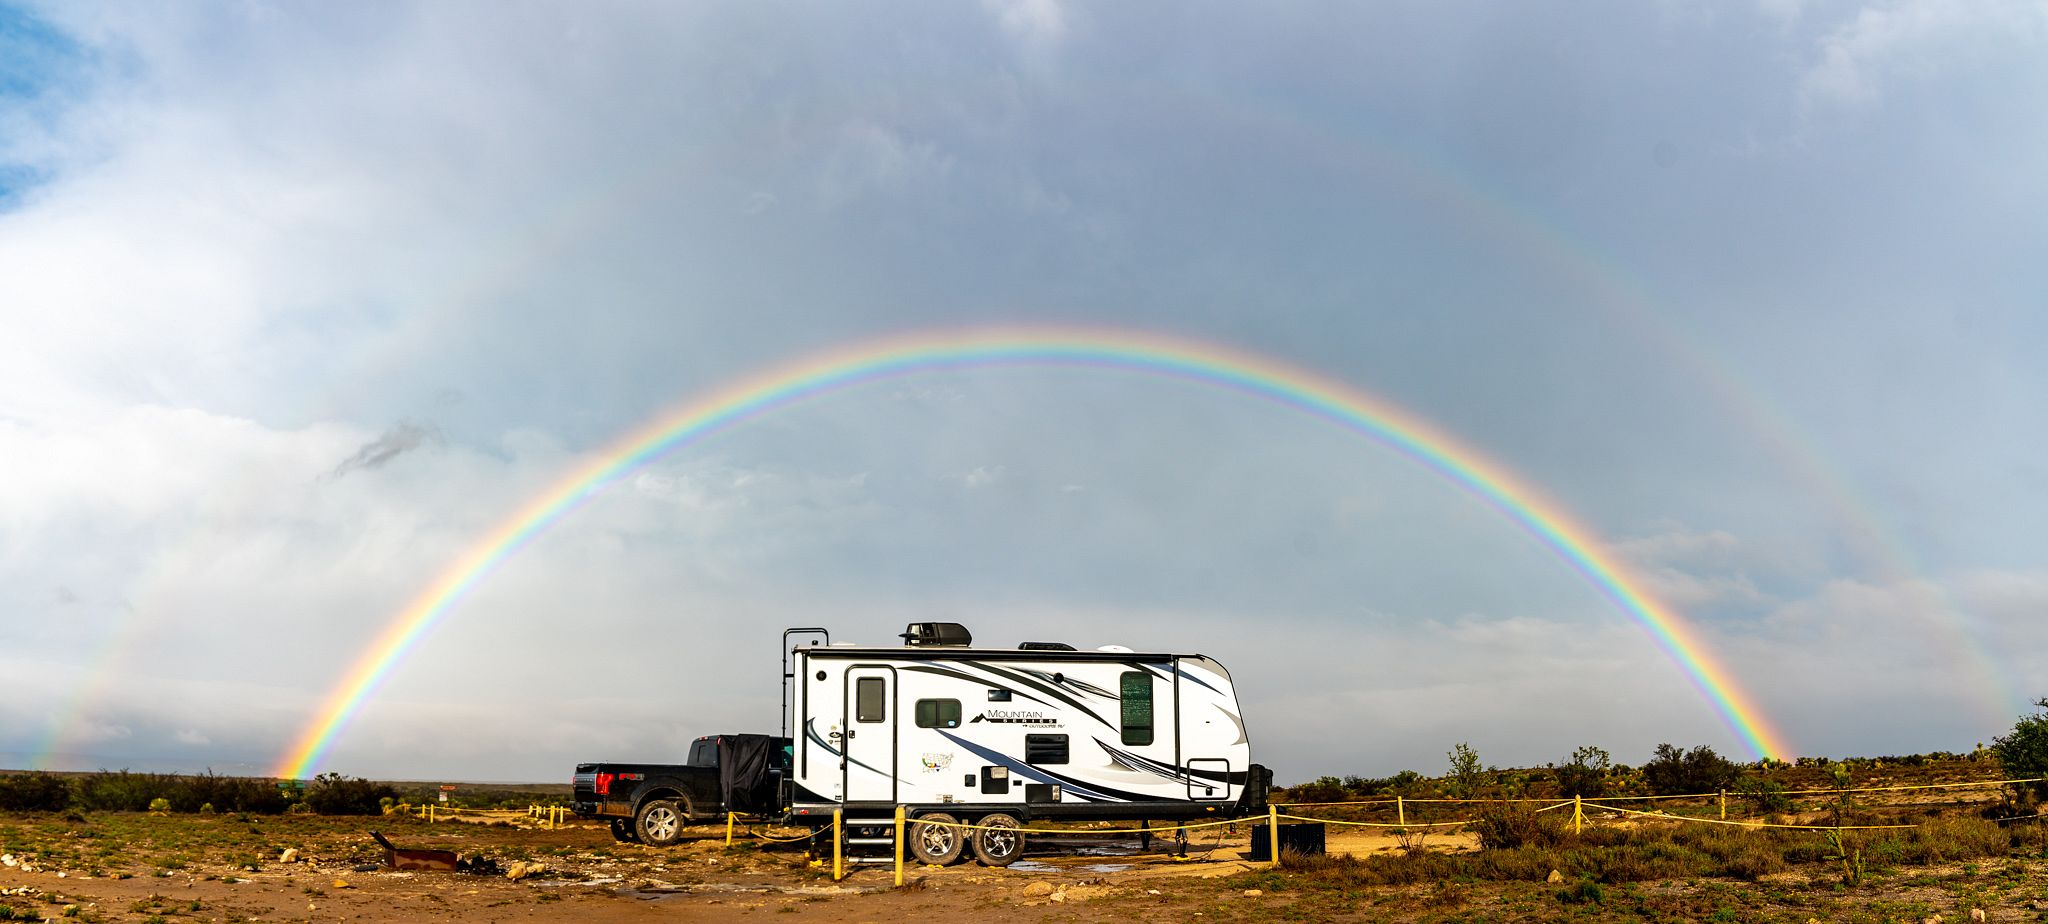 Rainbow Above our Trailer